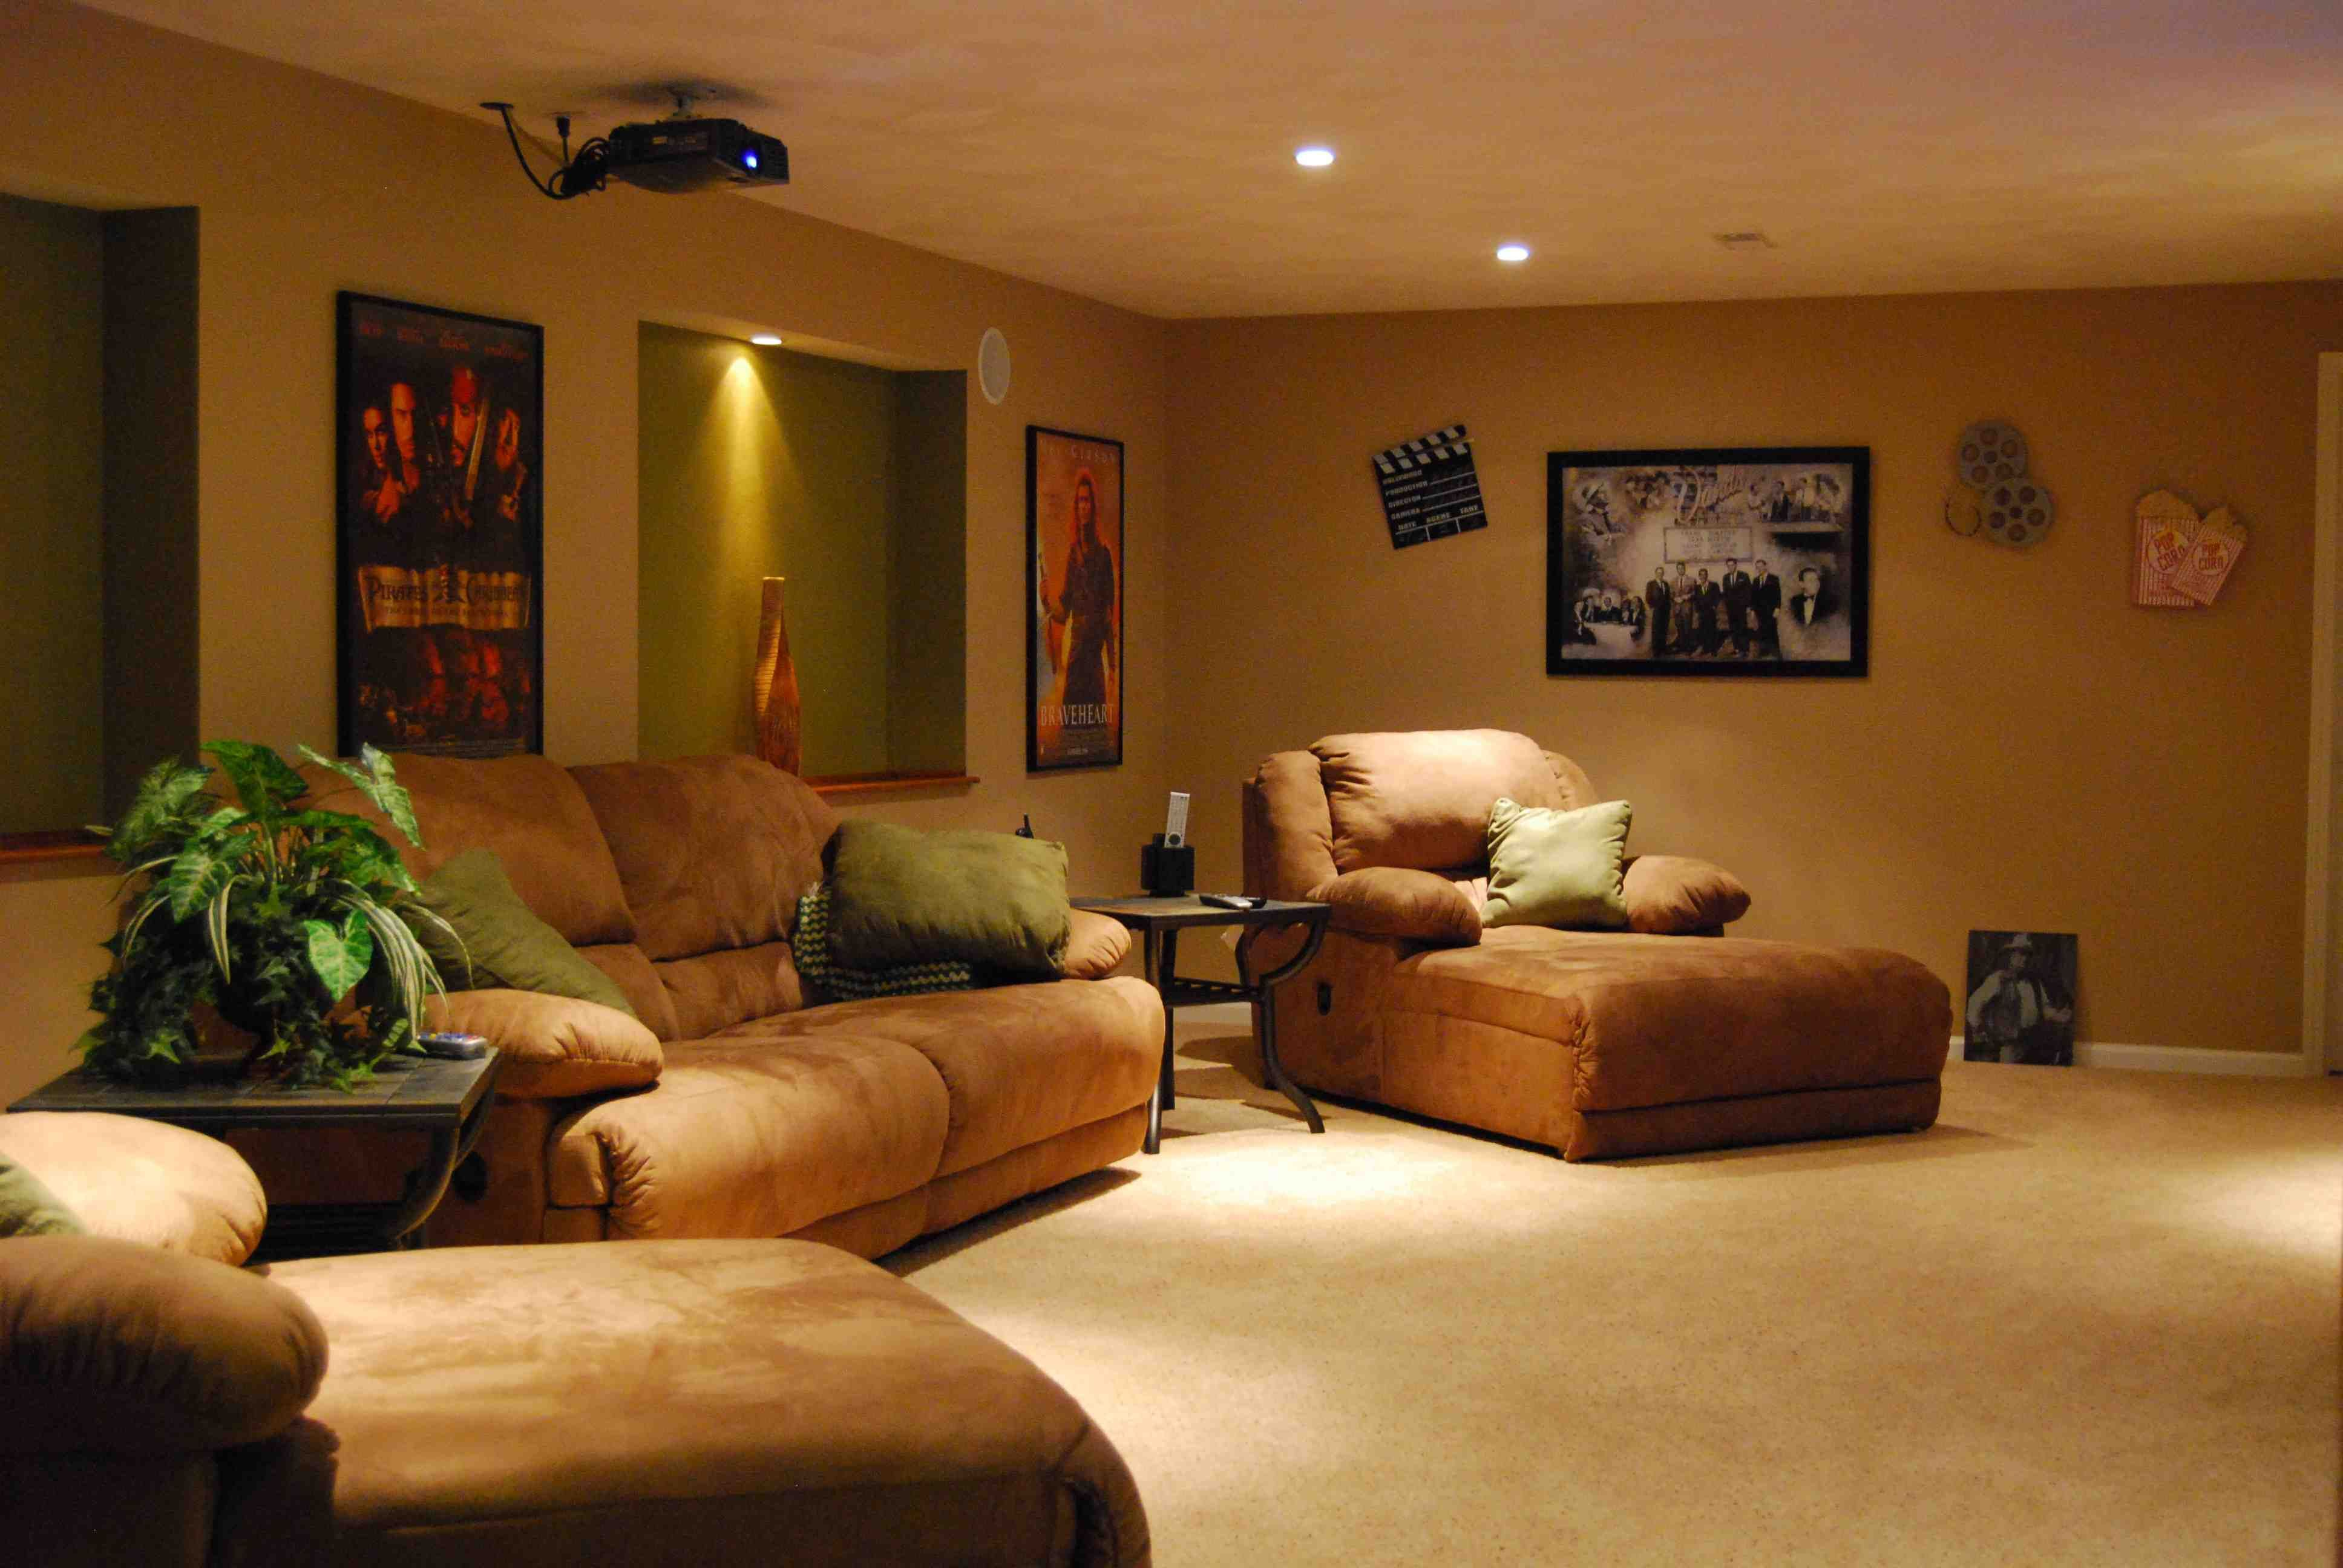 Entertainment Area Love The Seating And Ambiance Home Theater Seating Home Decor Home Theater Rooms